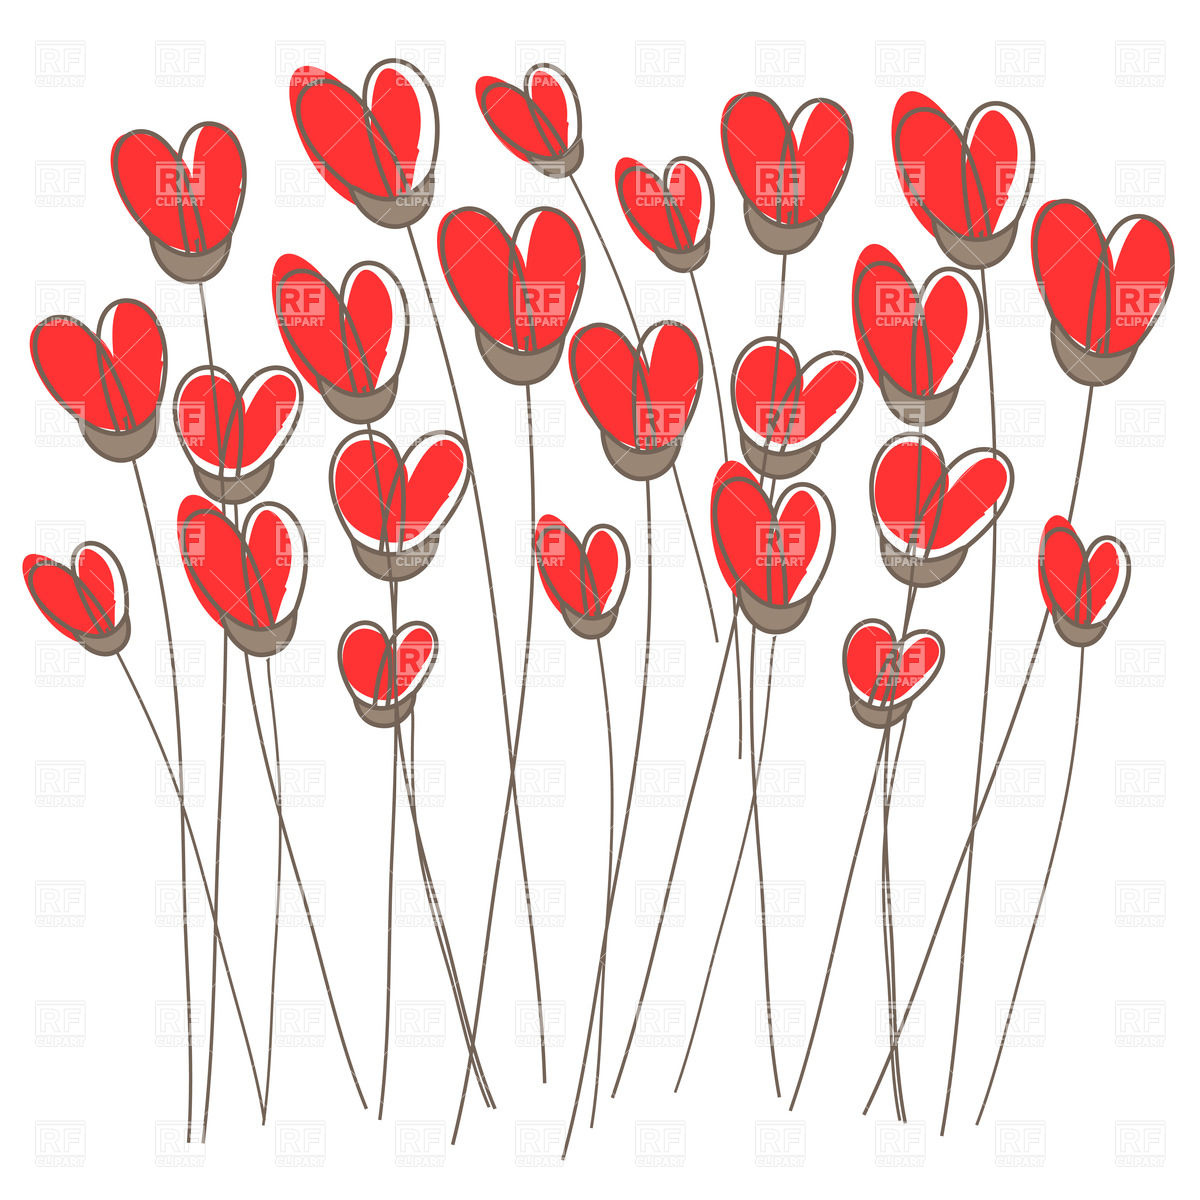 Clipart flowers and hearts library Hearts And Flowers Clipart - Clipart Kid library